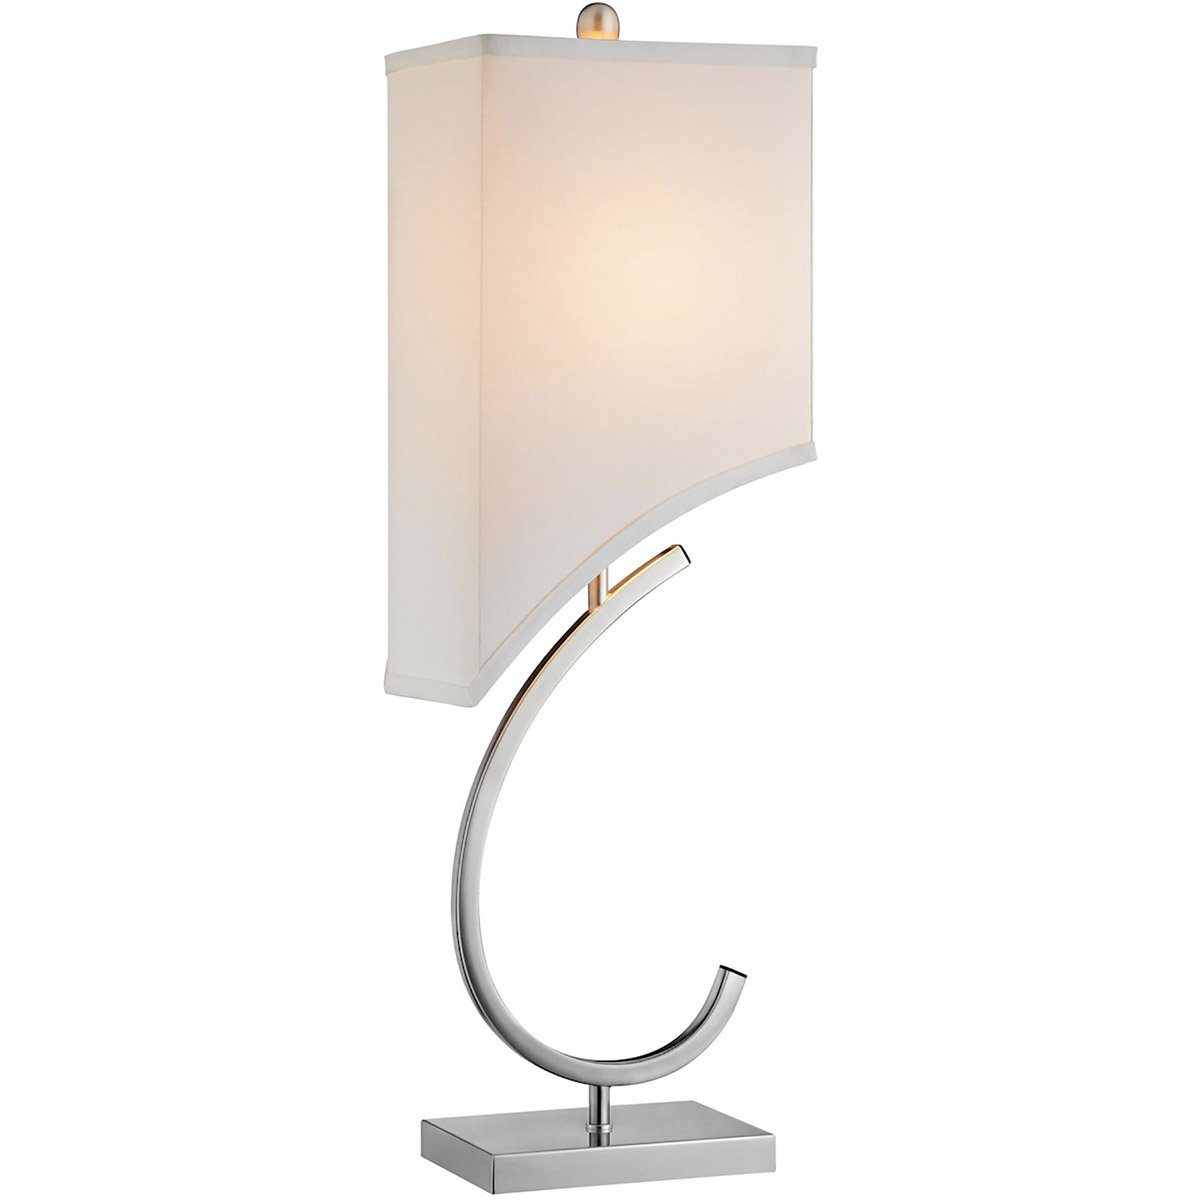 Table Lamp in White and Silver